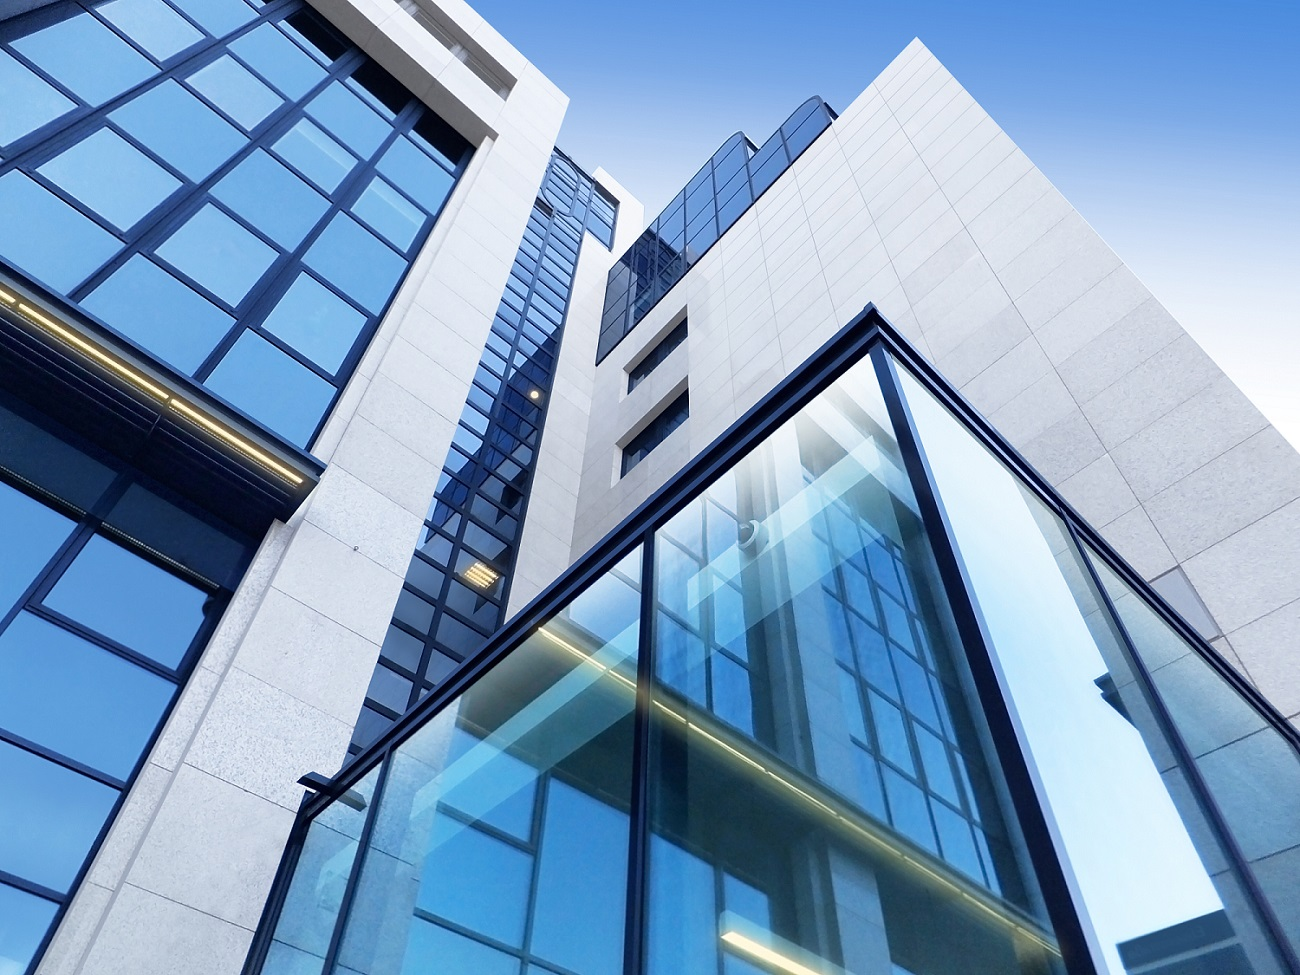 Clear/Tempered/Coating Reflective//Laminated/Low-E Insulated Glass for Buildings